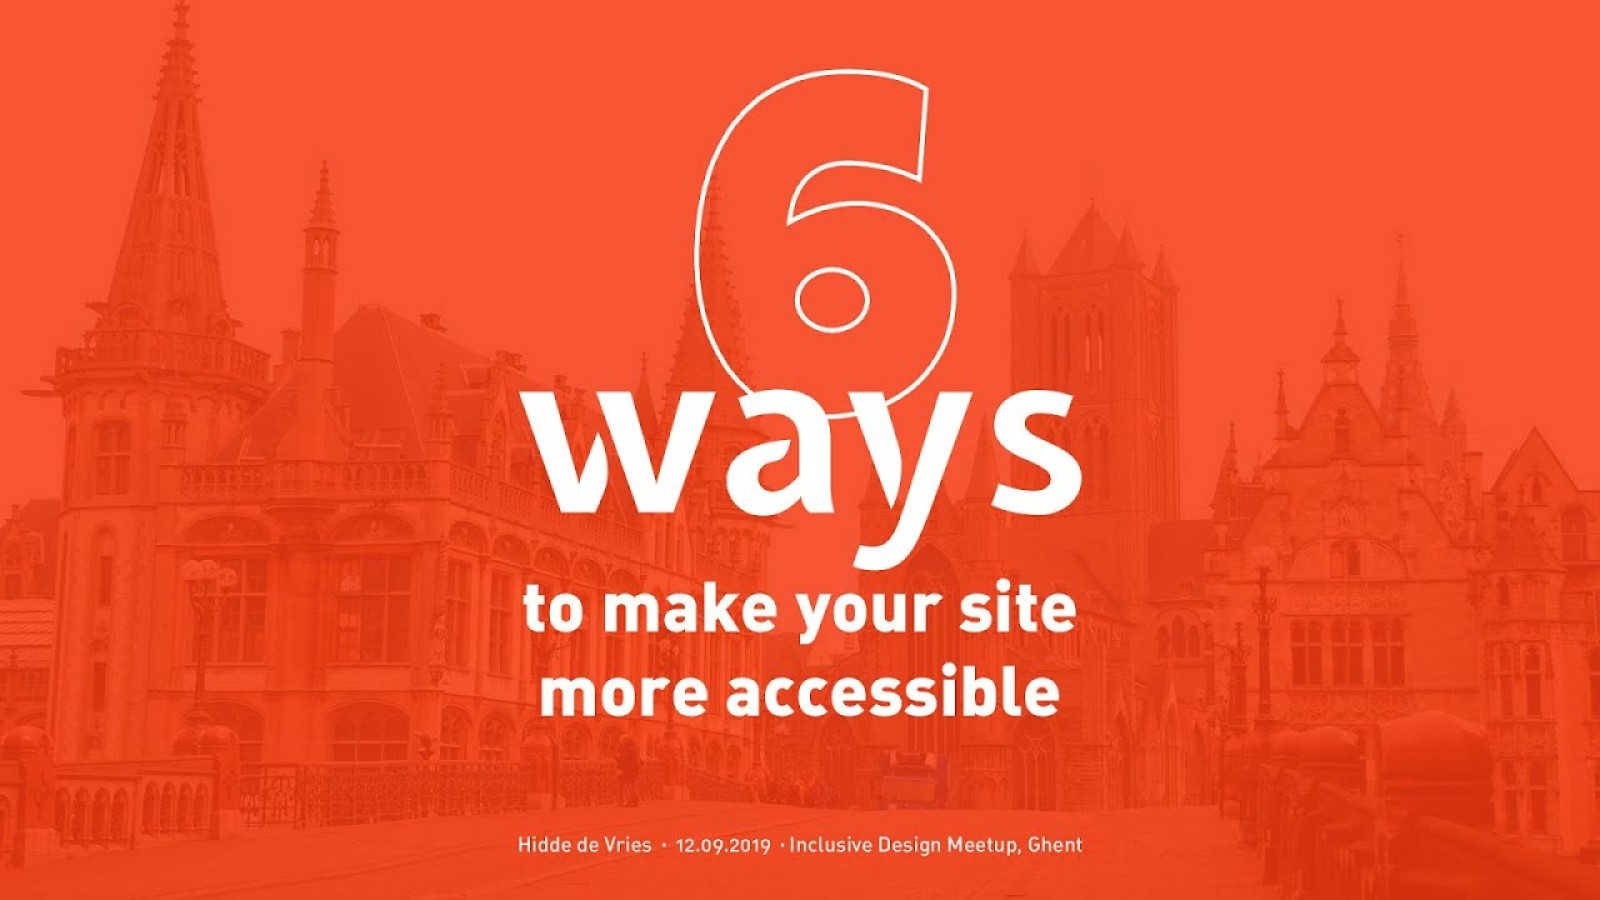 Six ways to make your site more accessible